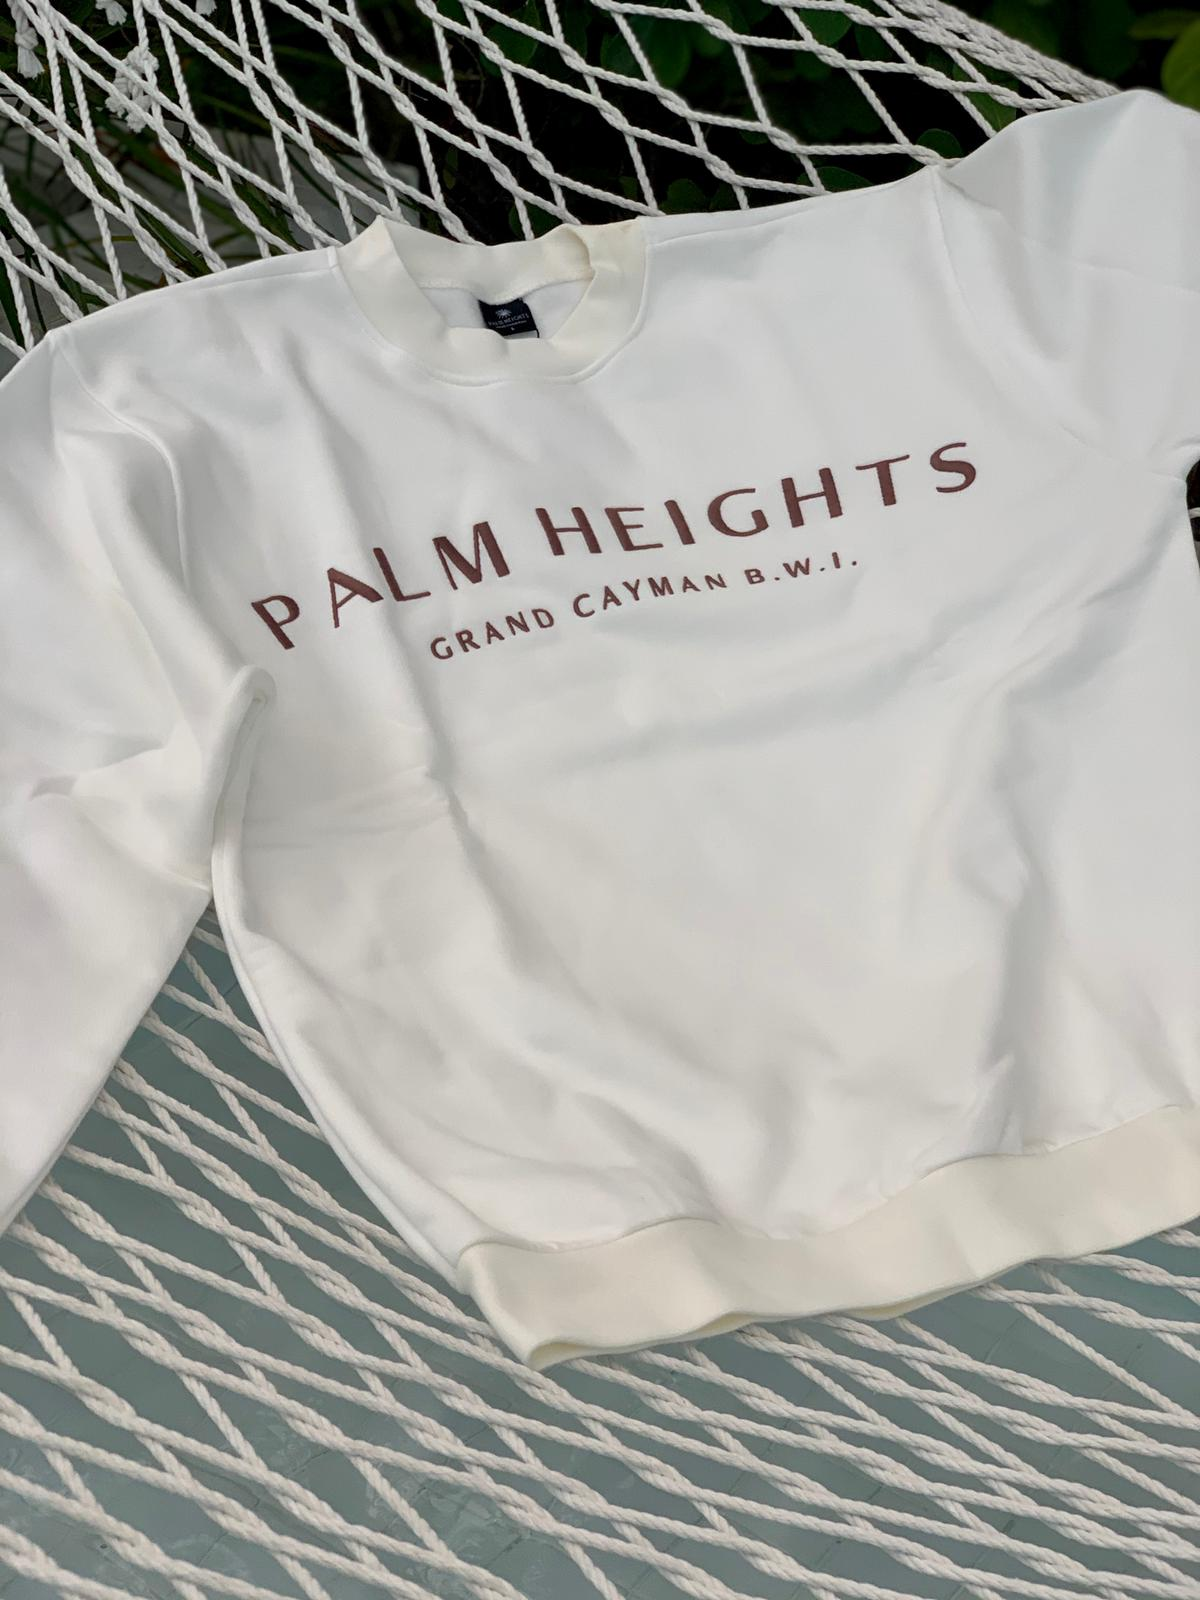 Palm Height Cotton Sweatshirt